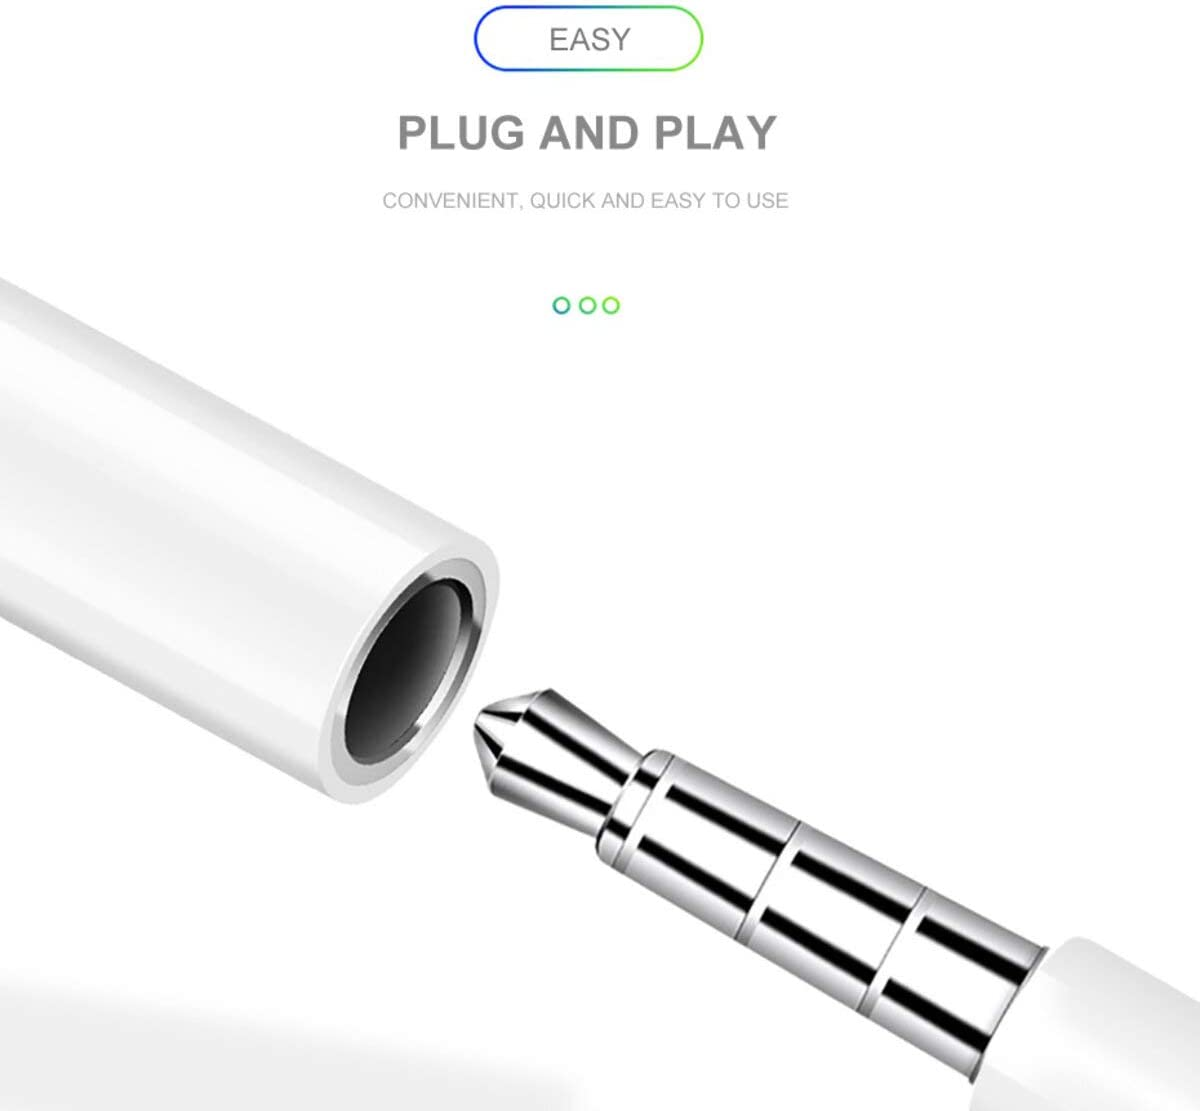 2 Pack Plug and Play 3.5mm Headphone Dongle Connector Compatible with iPhone 11 X//XS//Max//XR 7//8//8 Plus Lightning to AUX 3.5mm Headphone Jack Audio Cable Adapter Apple MFi Certified